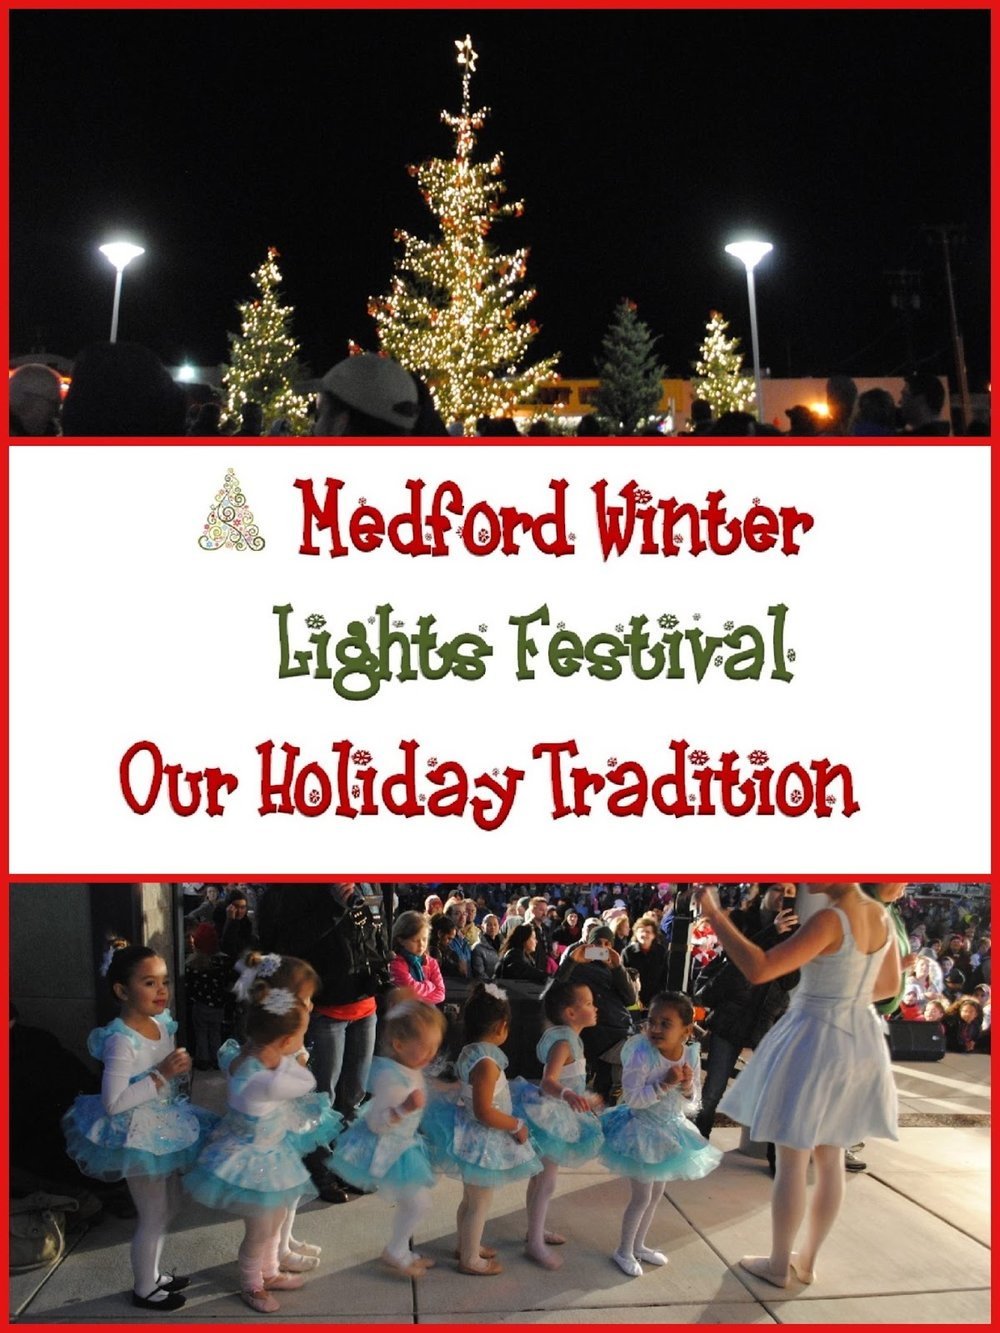 MEDFORD WINTER LIGHTS FESTIVAL - Candy Cane Hunt - Christmas - Santa